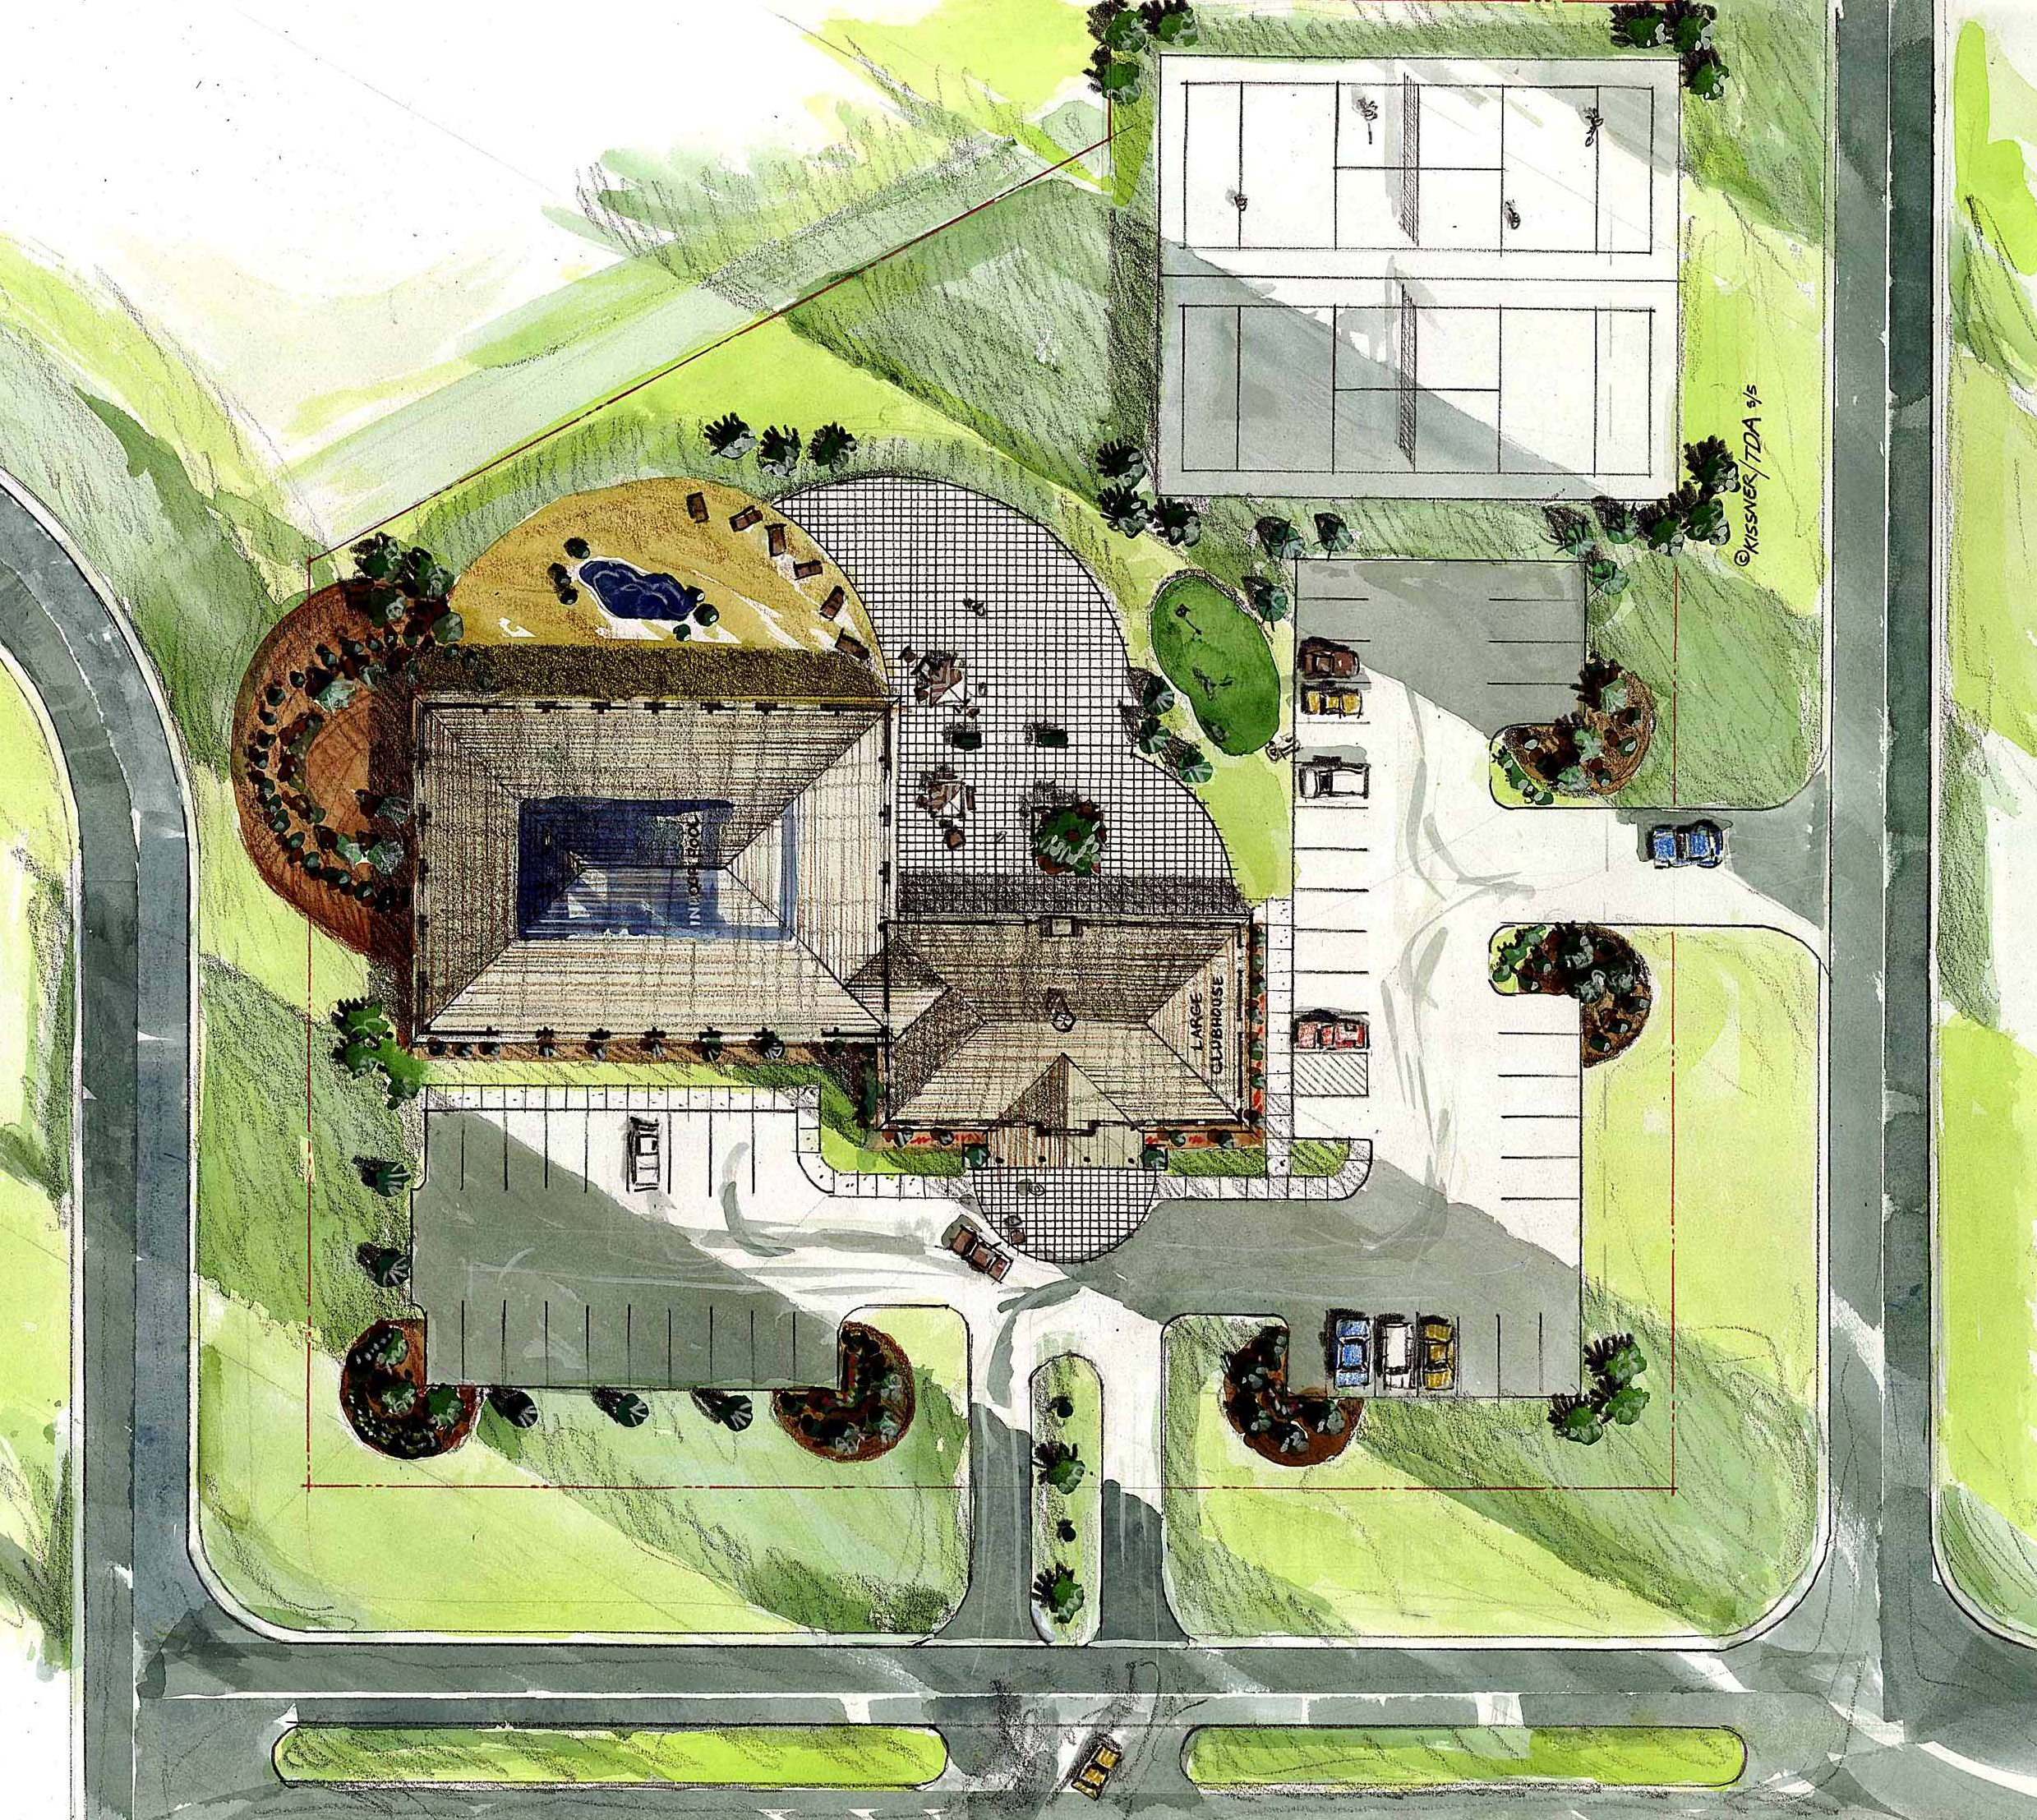 Site Plan for Waterside Community Clubhouse Sylvania Ohio